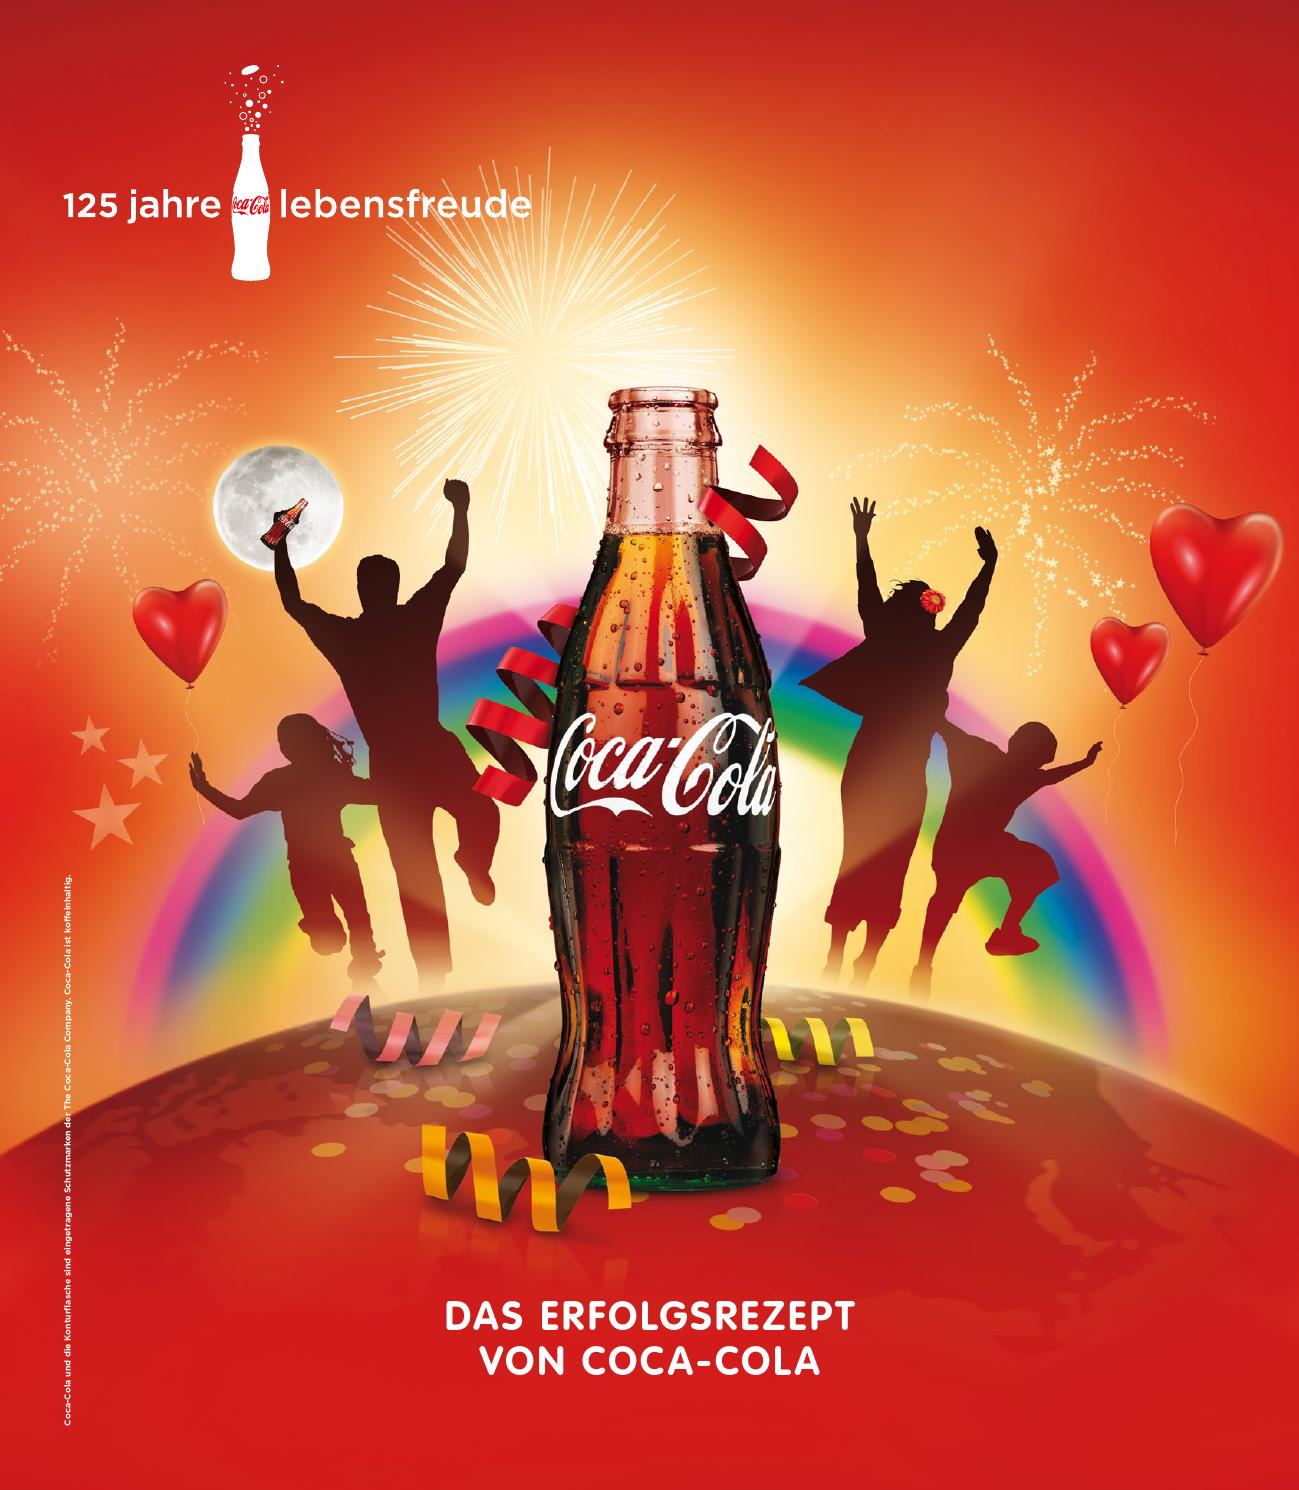 coca cola 125 jahre magazin editorial design by marco schroller. Black Bedroom Furniture Sets. Home Design Ideas